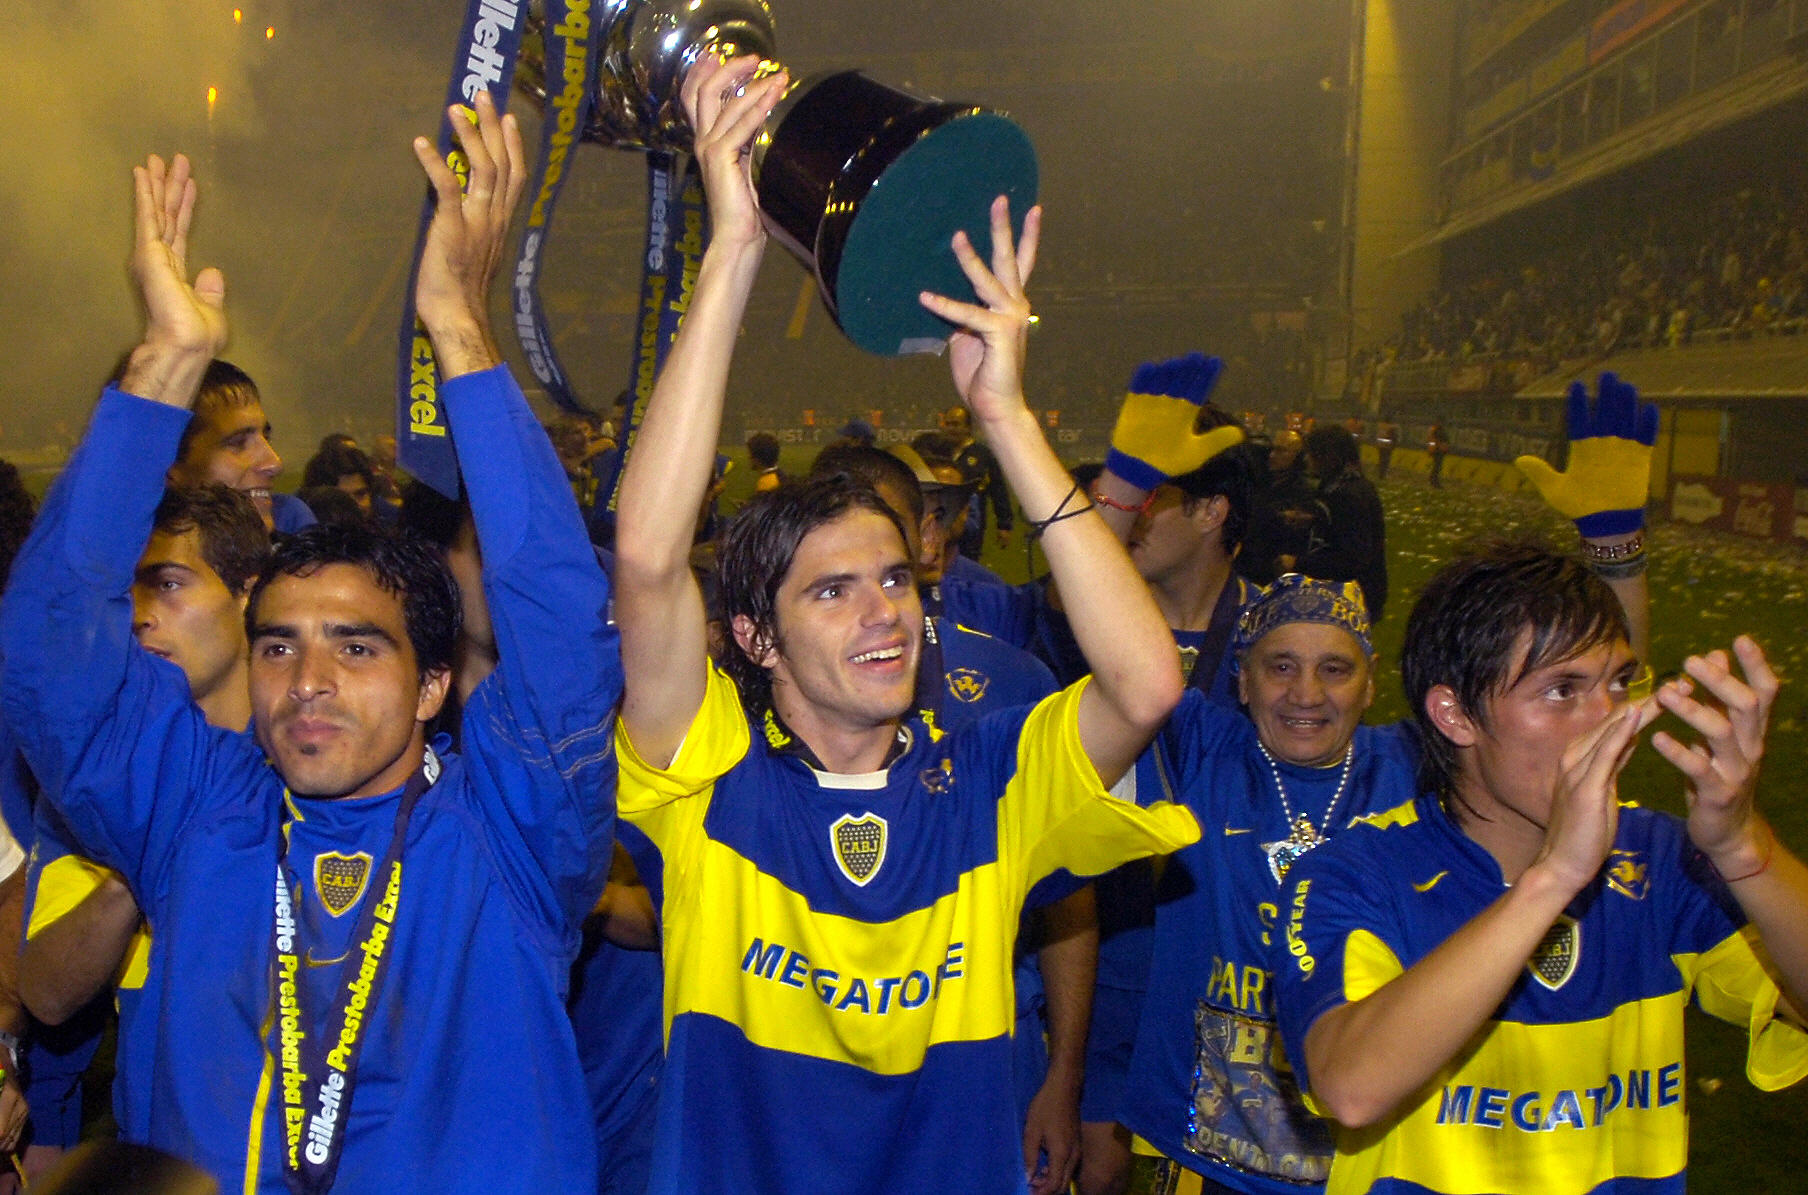 Buenos Aires, ARGENTINA:  Boca Junior's players Claudio Morel Rodriguez (L) Fernando Gago (C) and Neri Cardozo, celebrate their Clausura Tournament title at La Bombonera stadium in Buenos Aires, 14 May 2006. AFP PHOTO/Juan MABROMATA  (Photo credit should read JUAN MABROMATA/AFP/Getty Images)